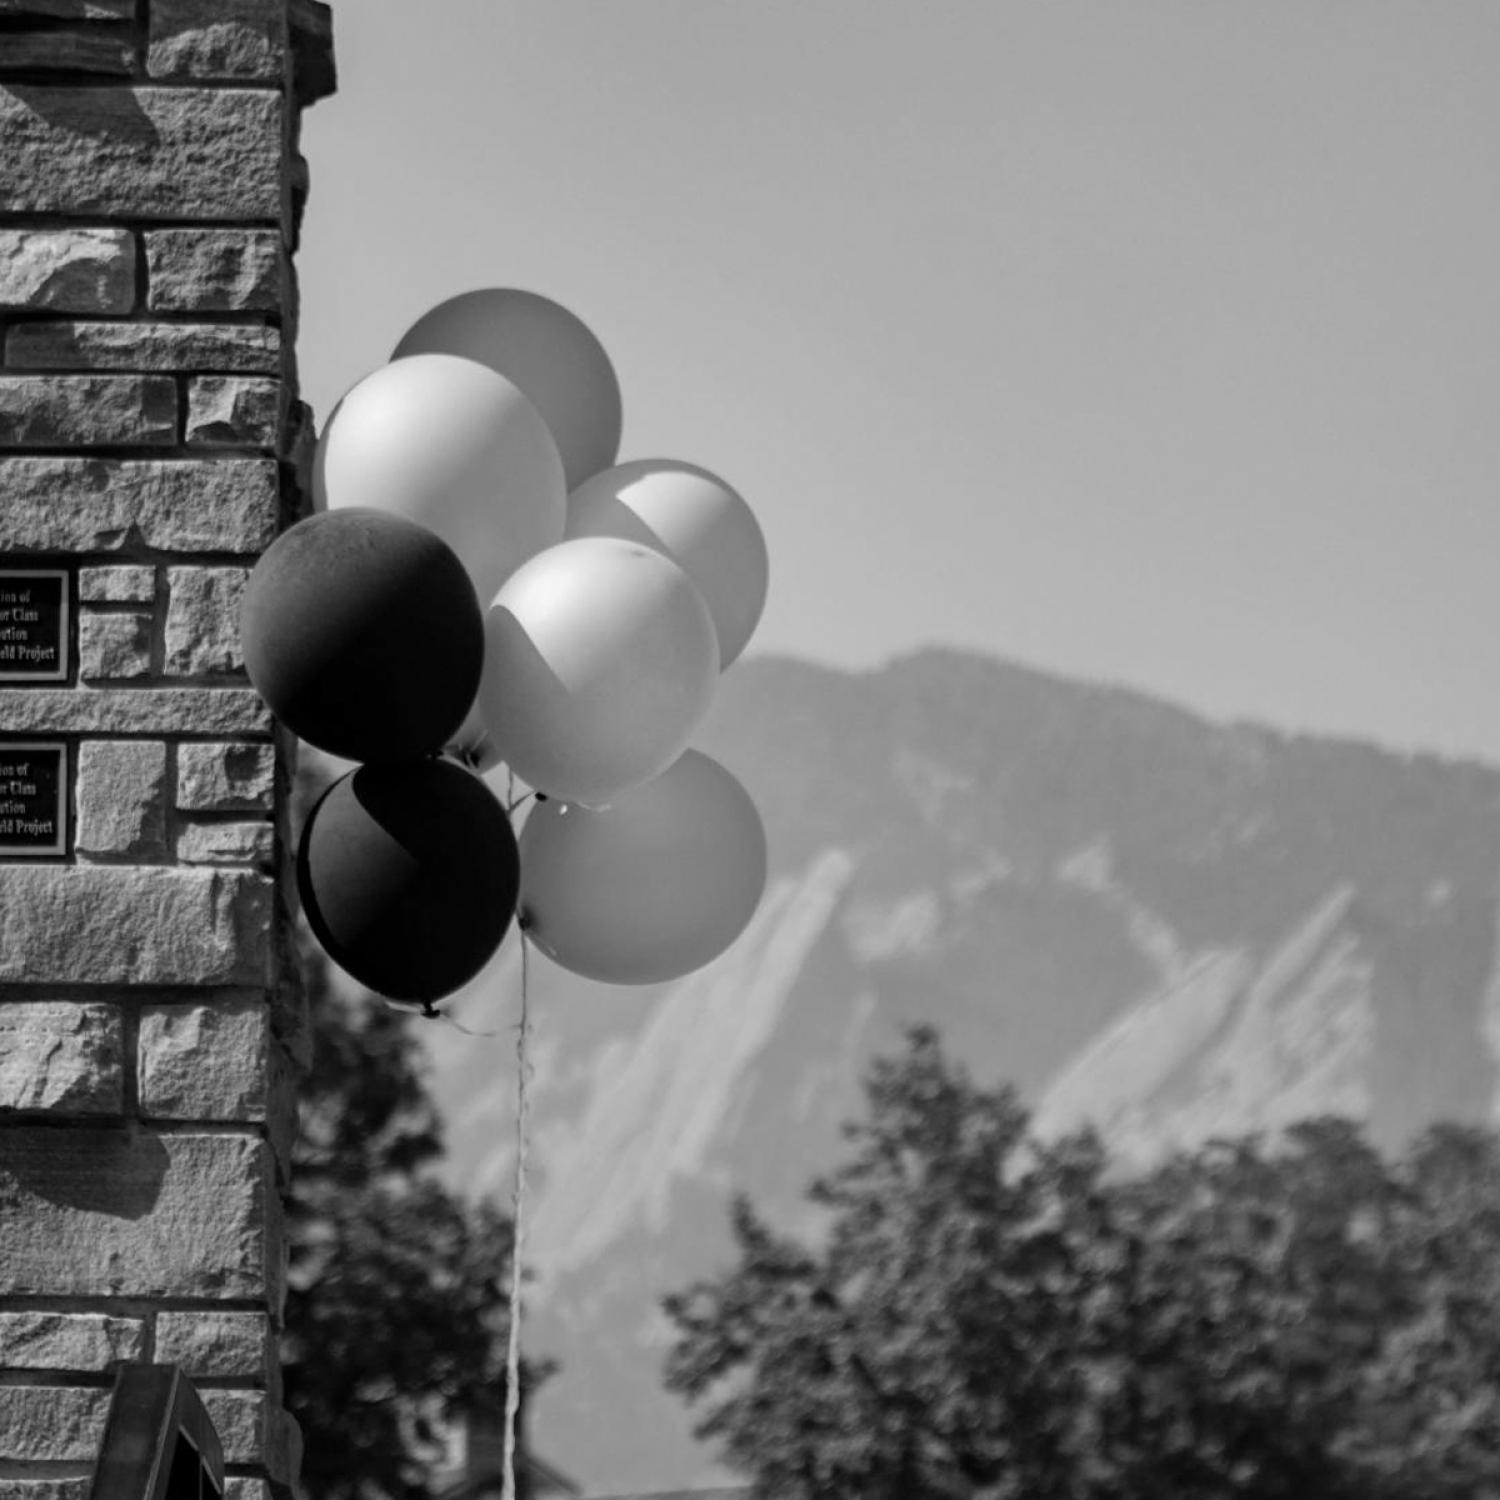 CU balloons in front of the flatirons